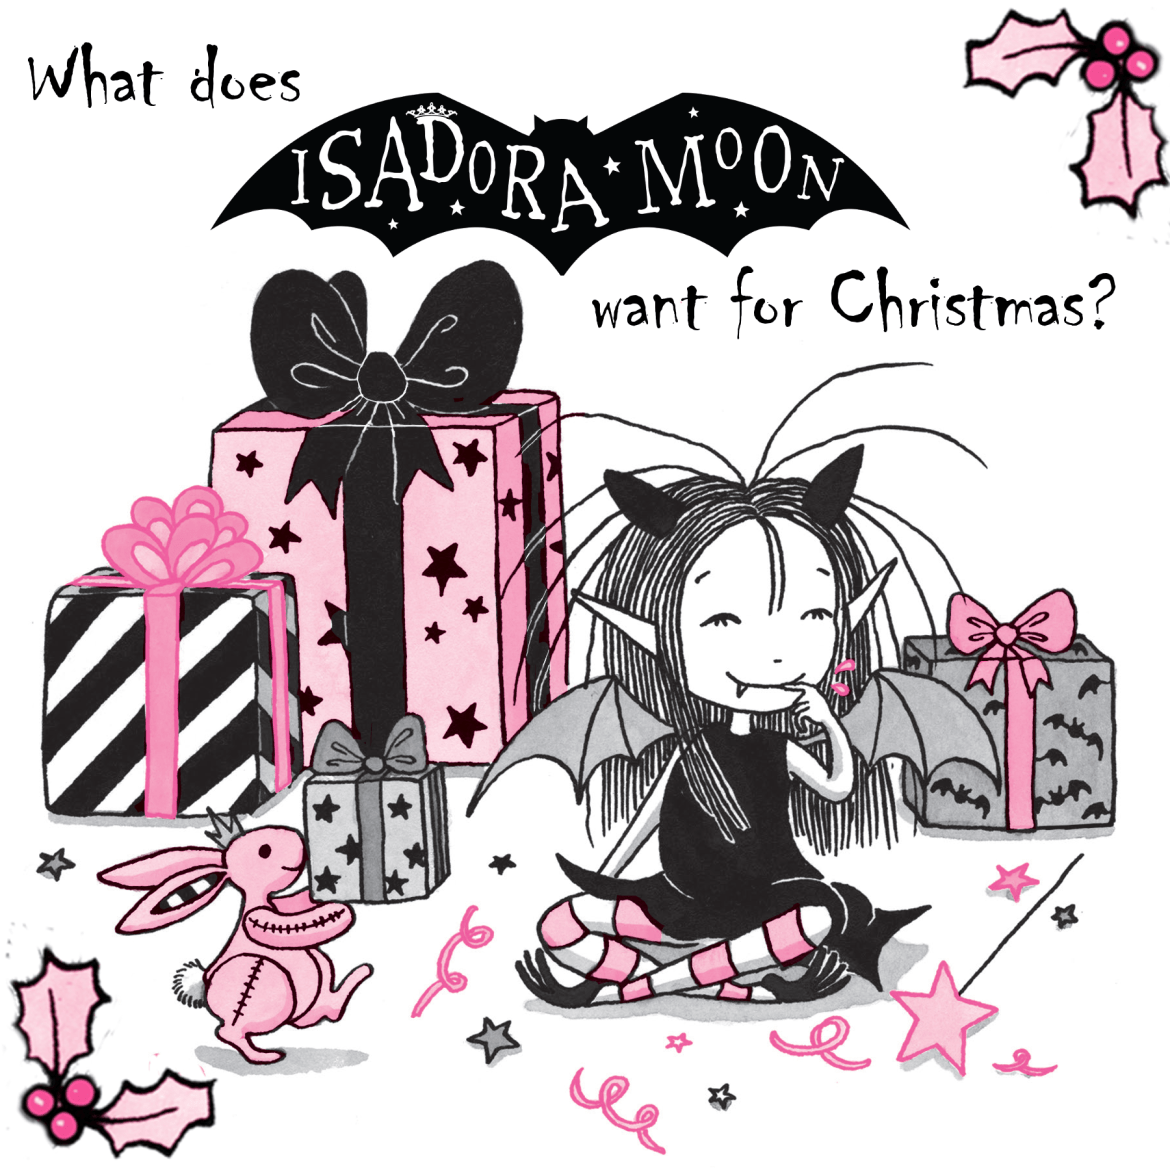 what does Isadora Moon want for Christmas?